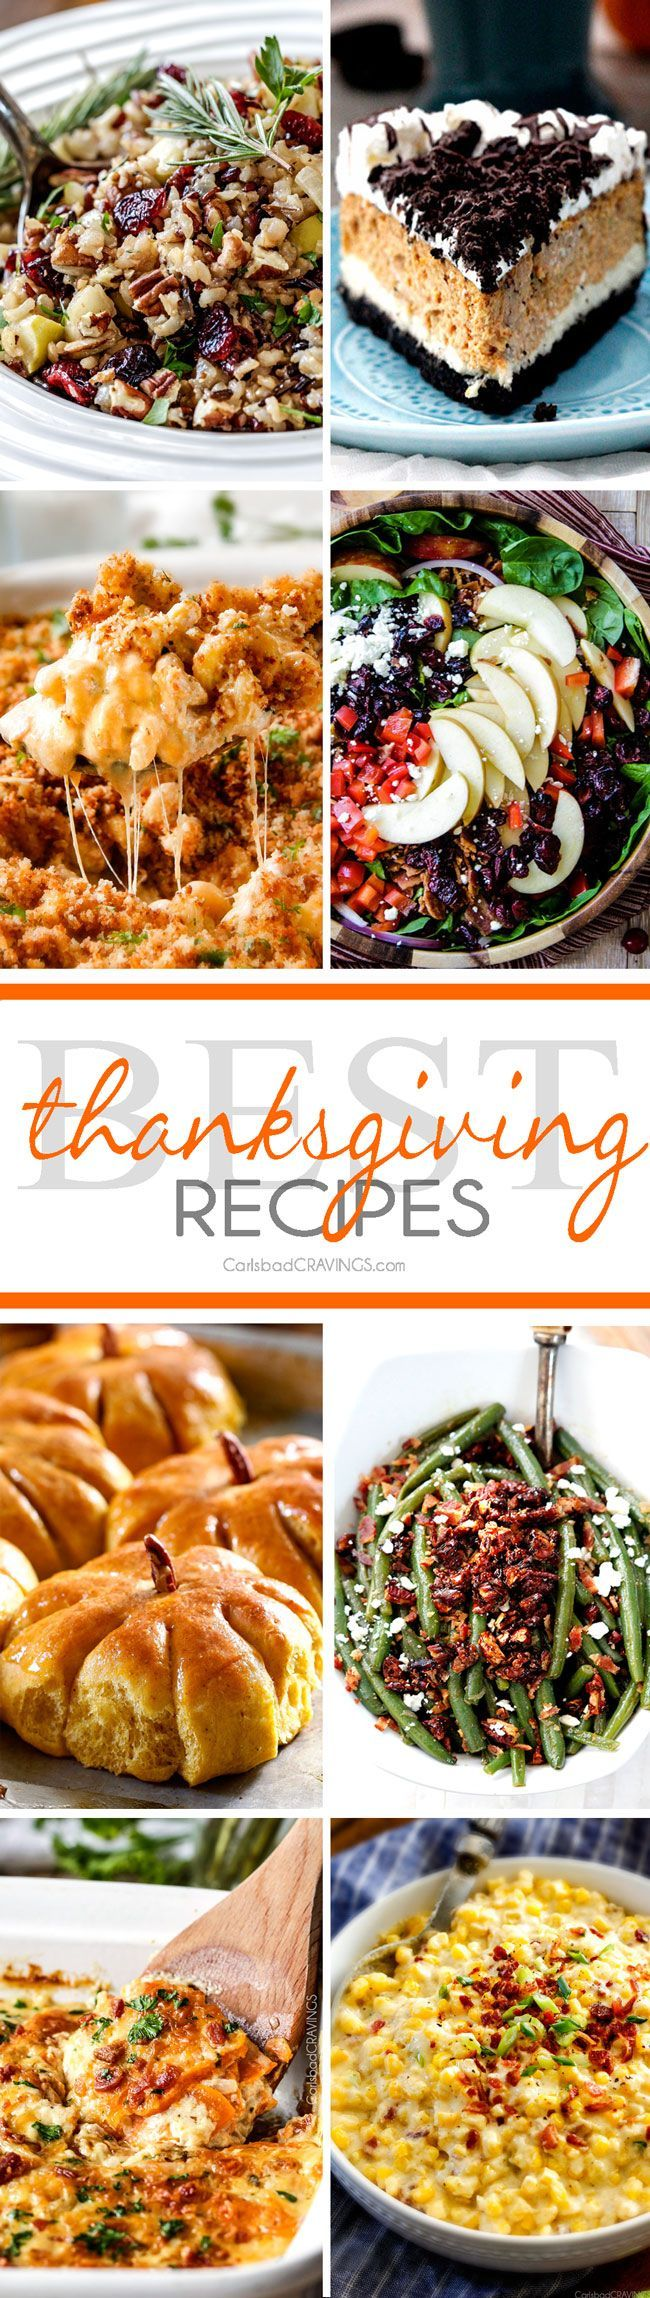 Over 25 of the BEST Thanksgiving Recipes!